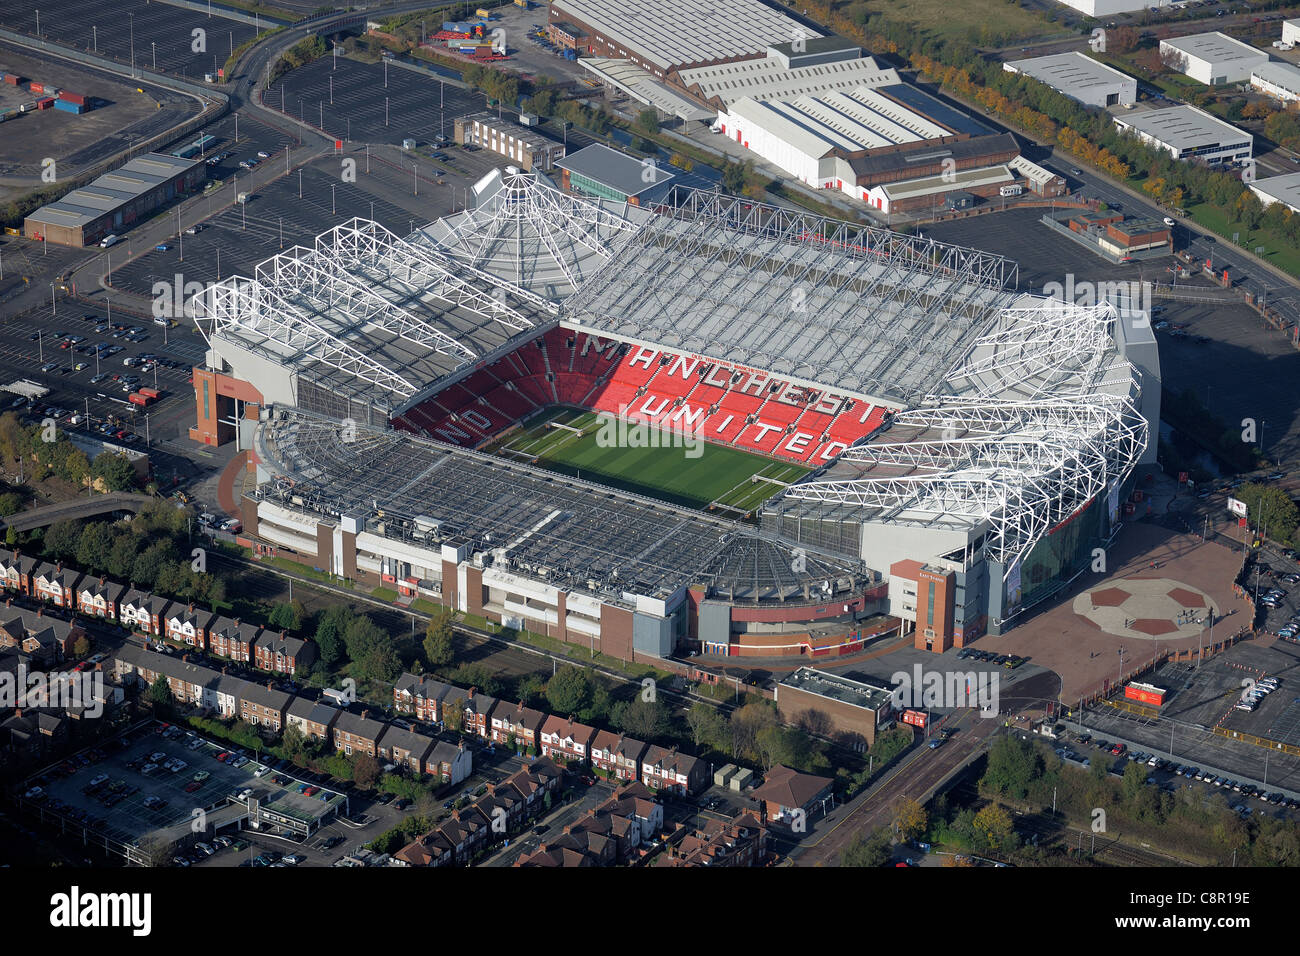 Aerial view of Old Trafford football stadium, home of Manchester United FC - Stock Image